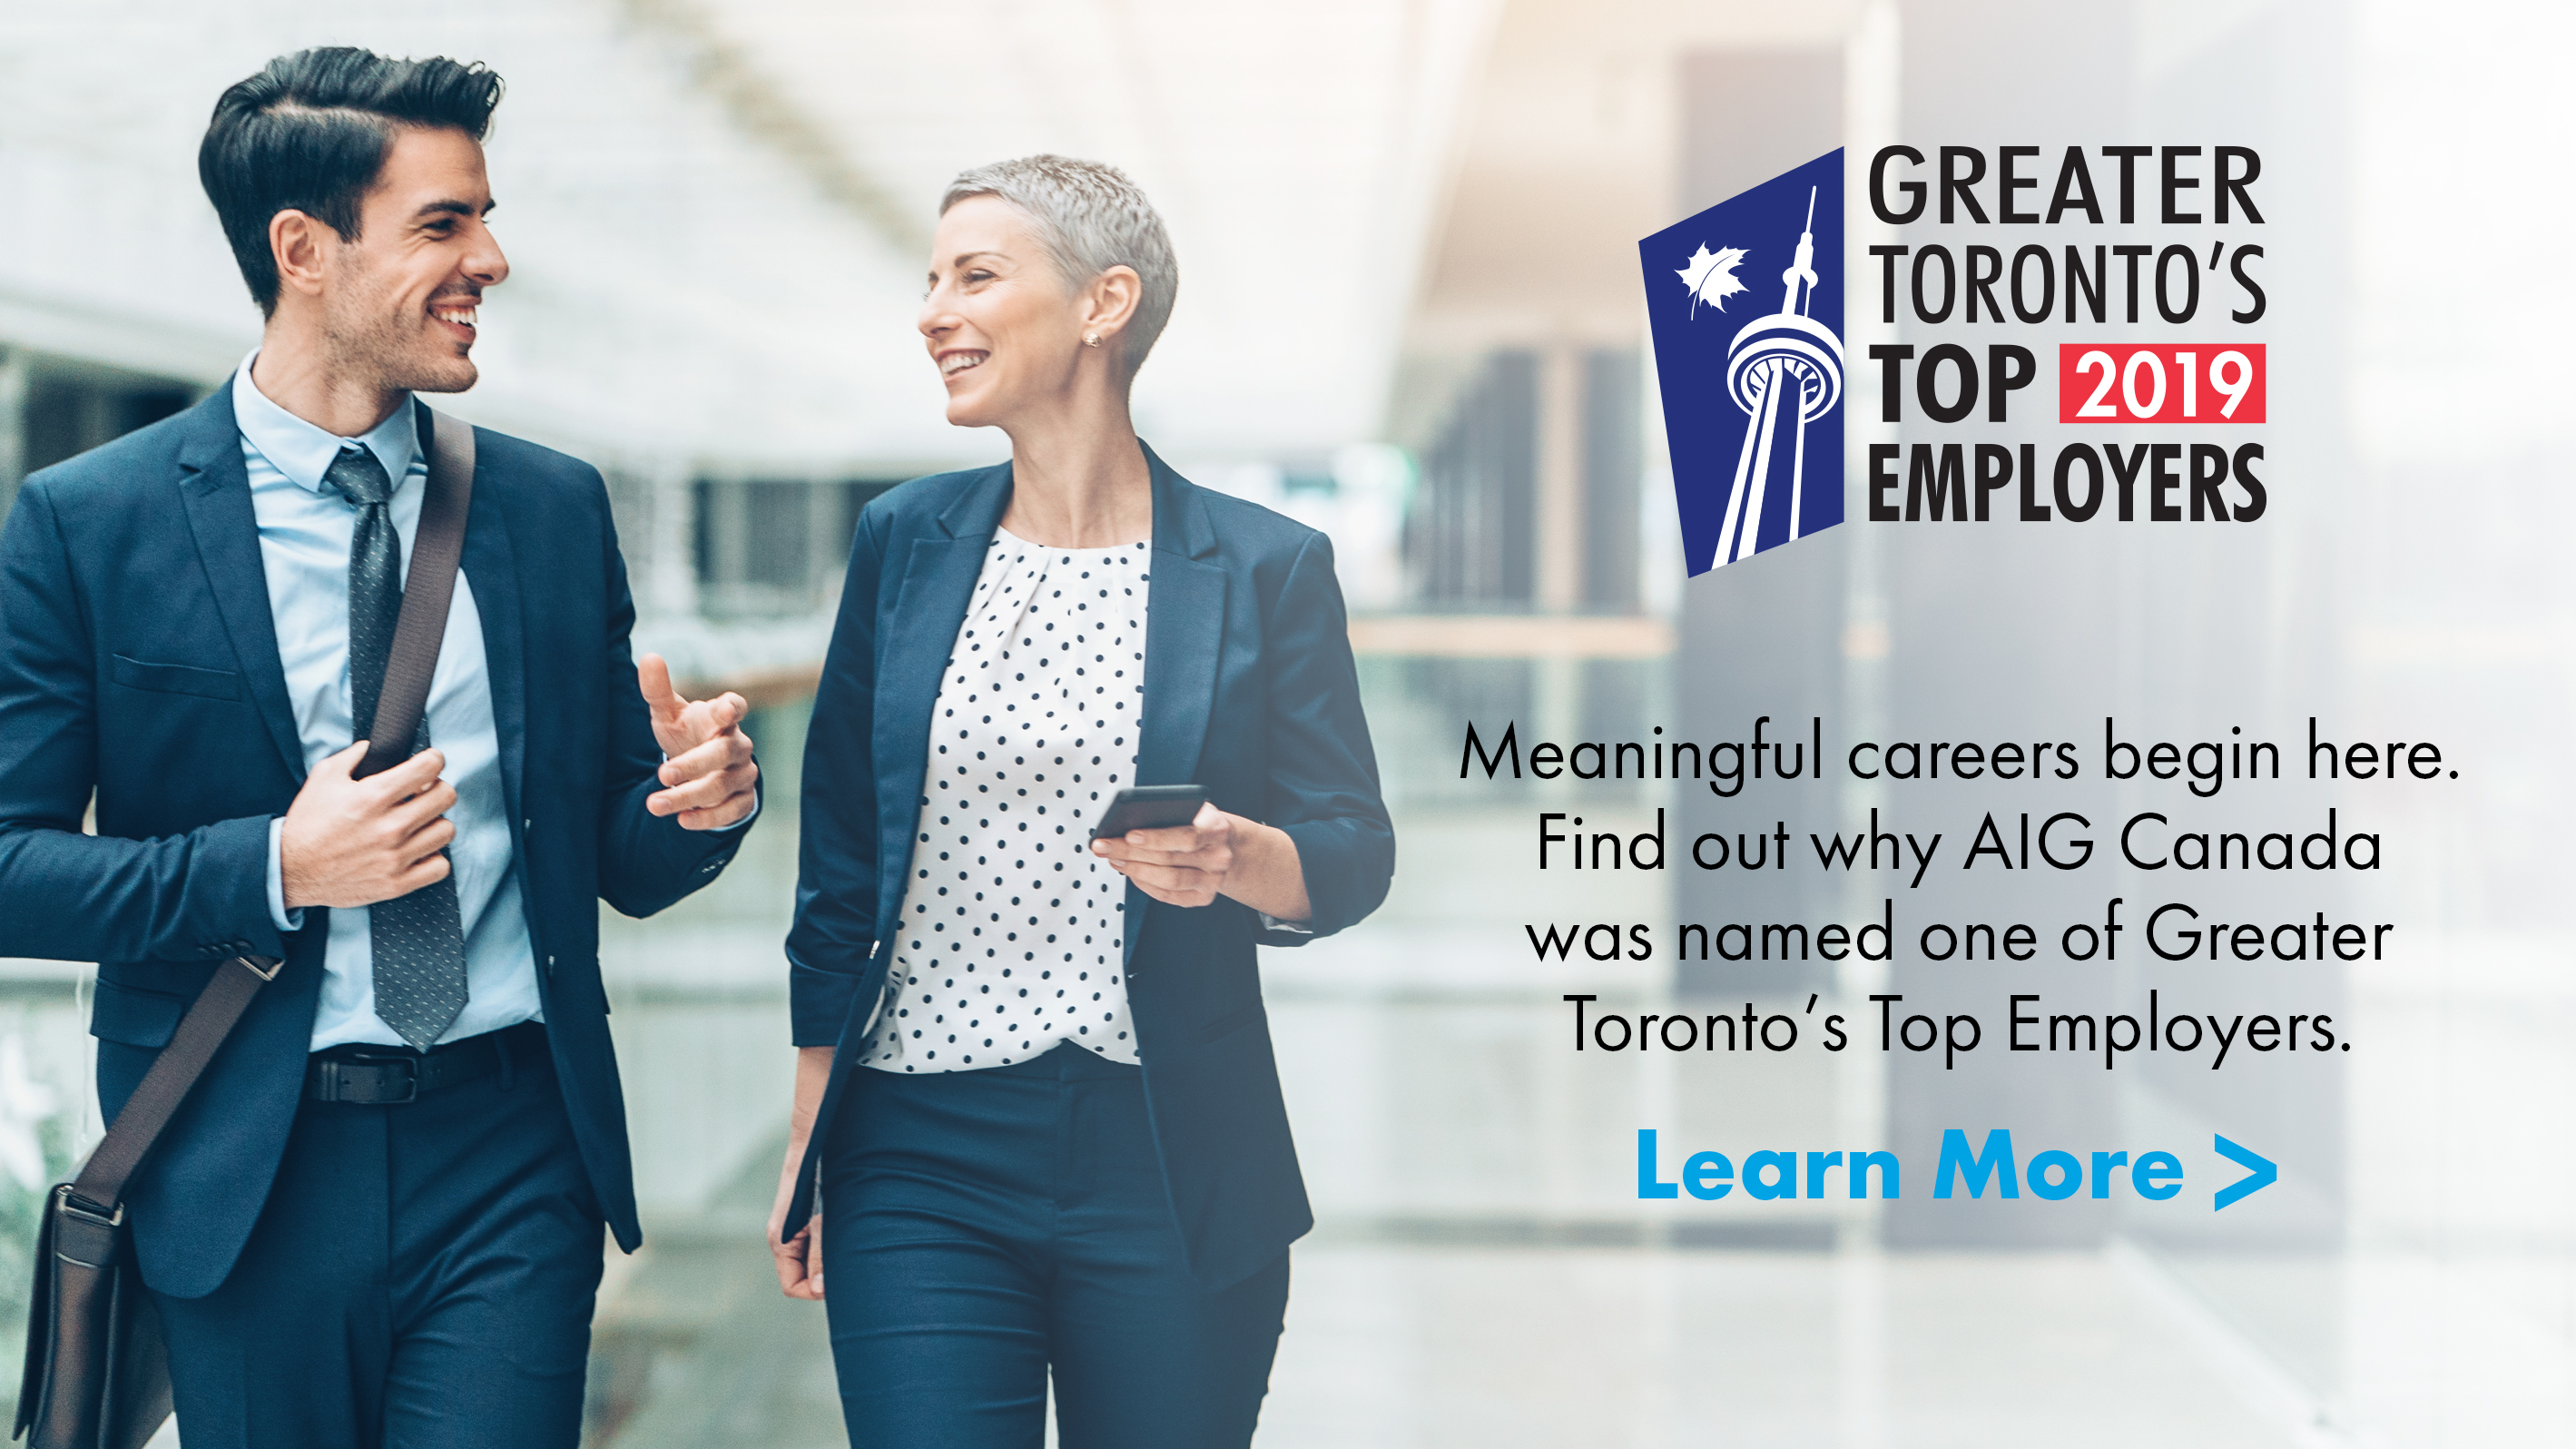 Greater Toronto's Top 2019 Employers Award